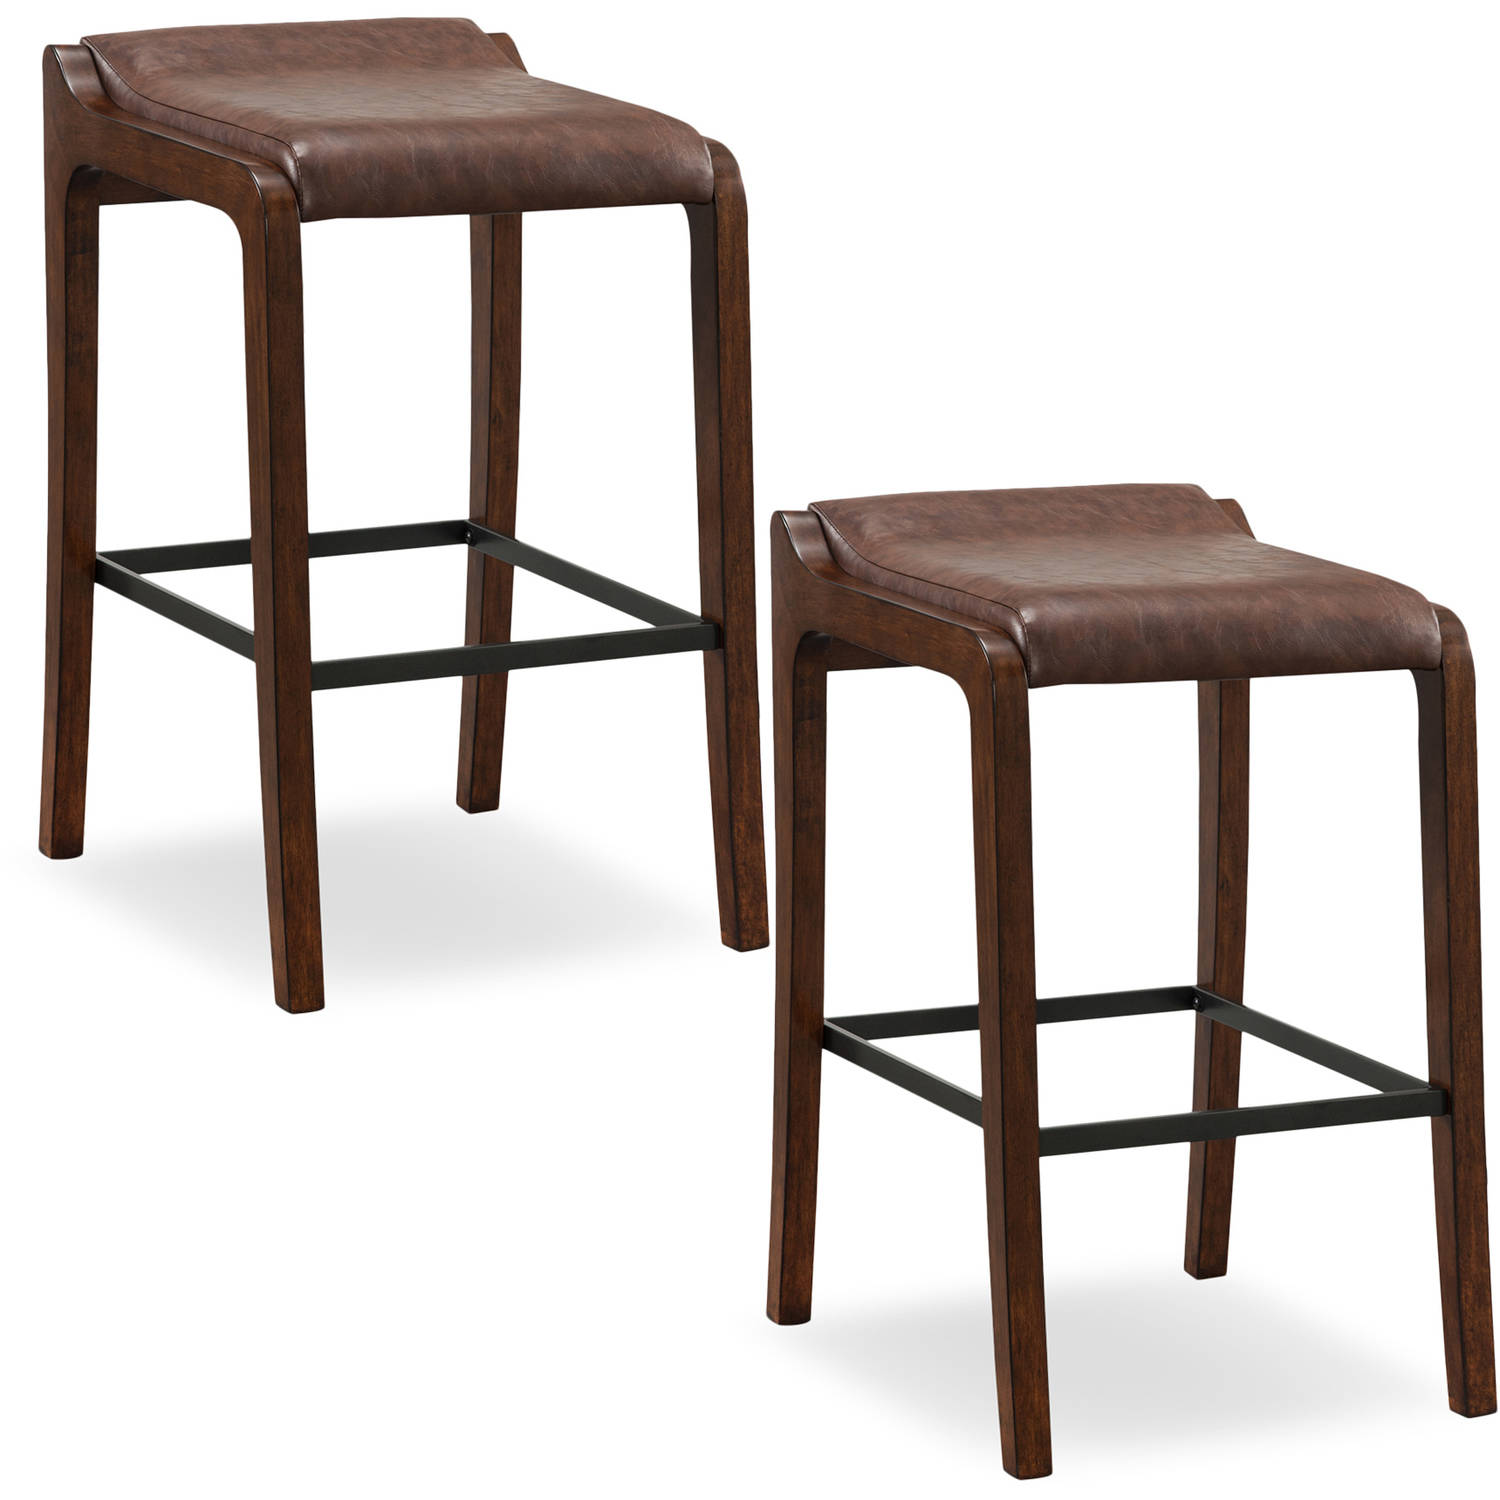 Leick Home 10117SN/SB Wood Fastback Bar Height Stool with Faux Leather Seat, Set of 2, Multiple Colors